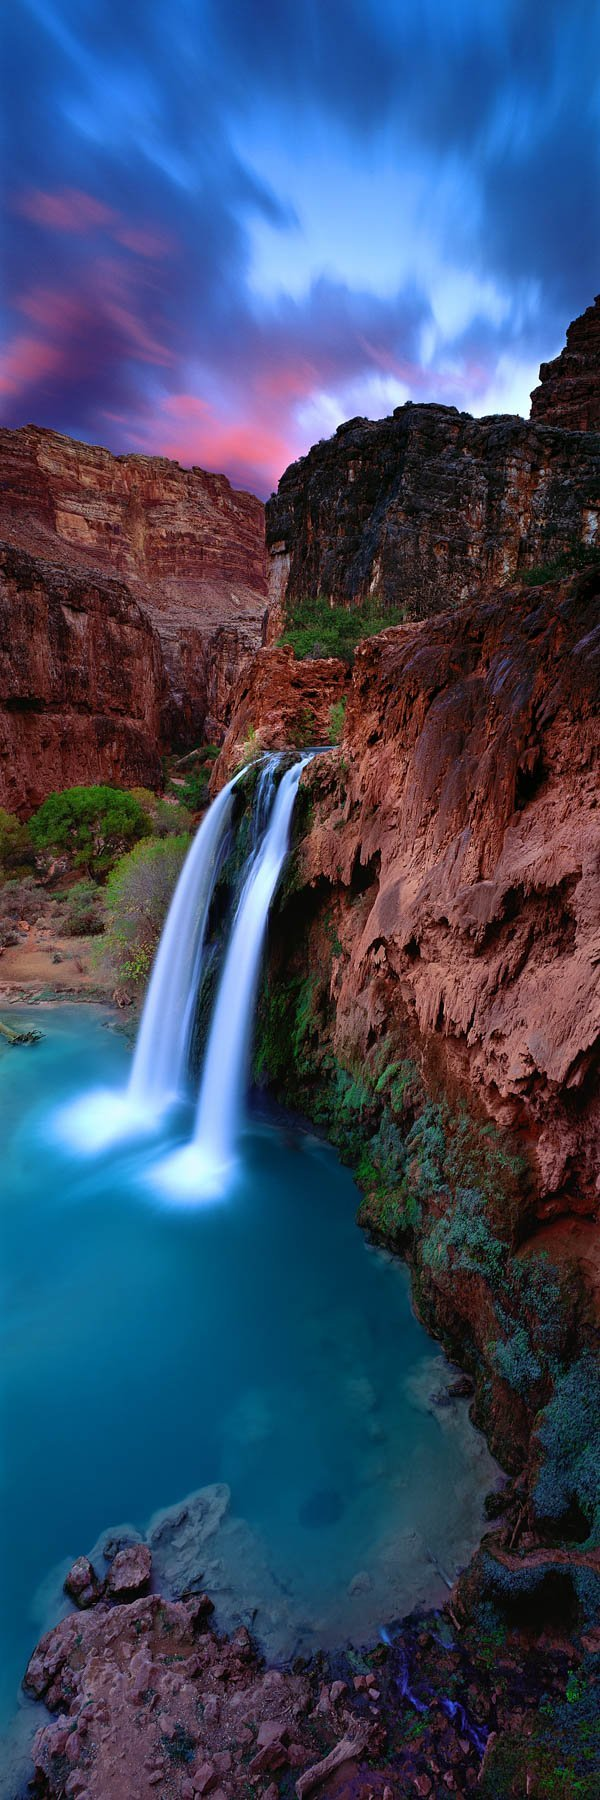 Twilight over Havasu Falls, Grand Canyon, Arizona, USA.